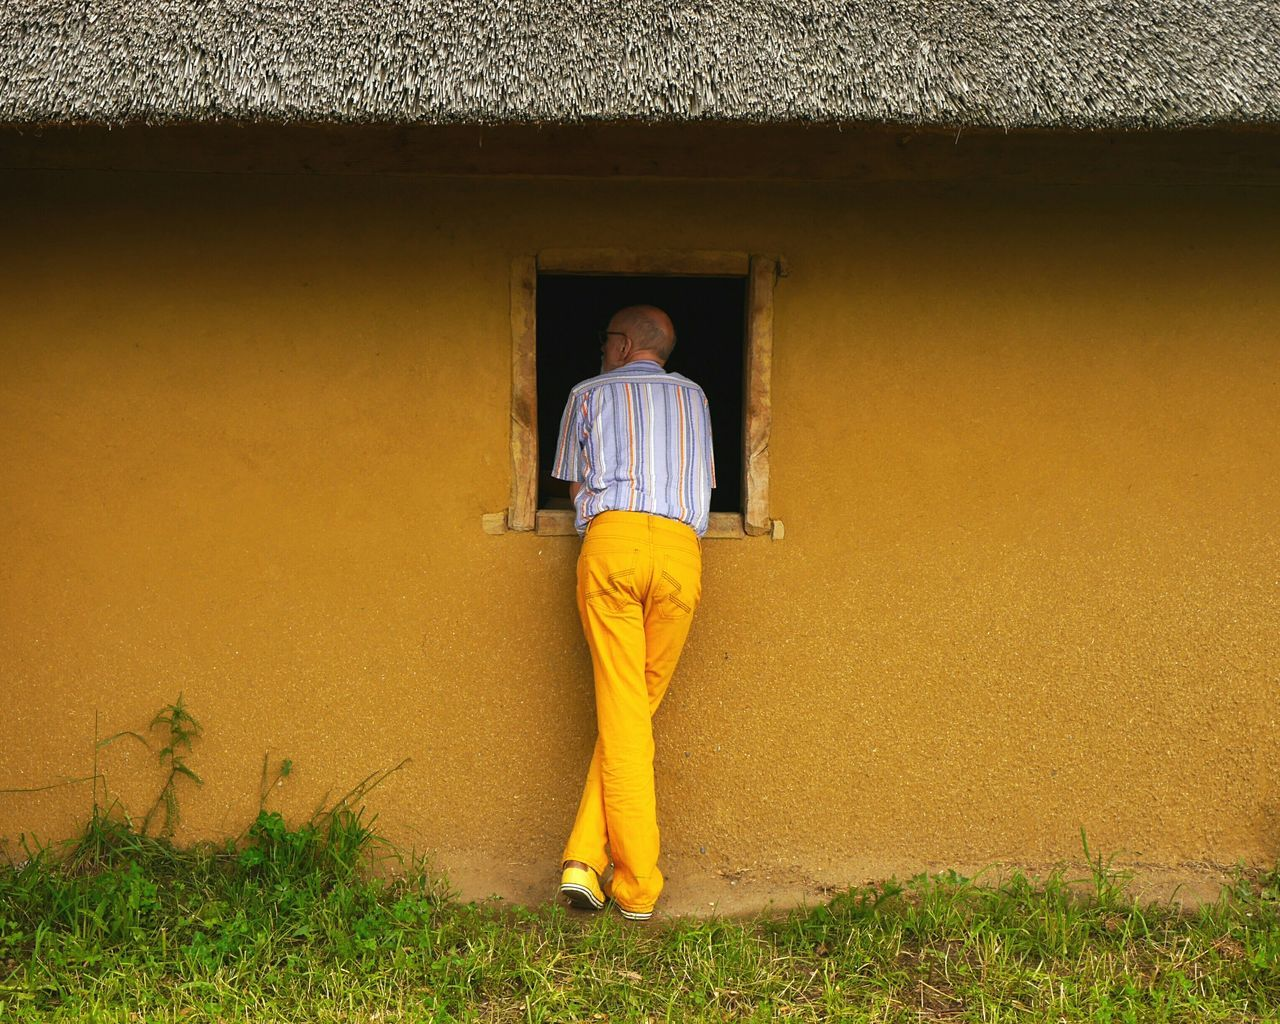 Beautiful stock photos of senior, real people, standing, full length, rear view